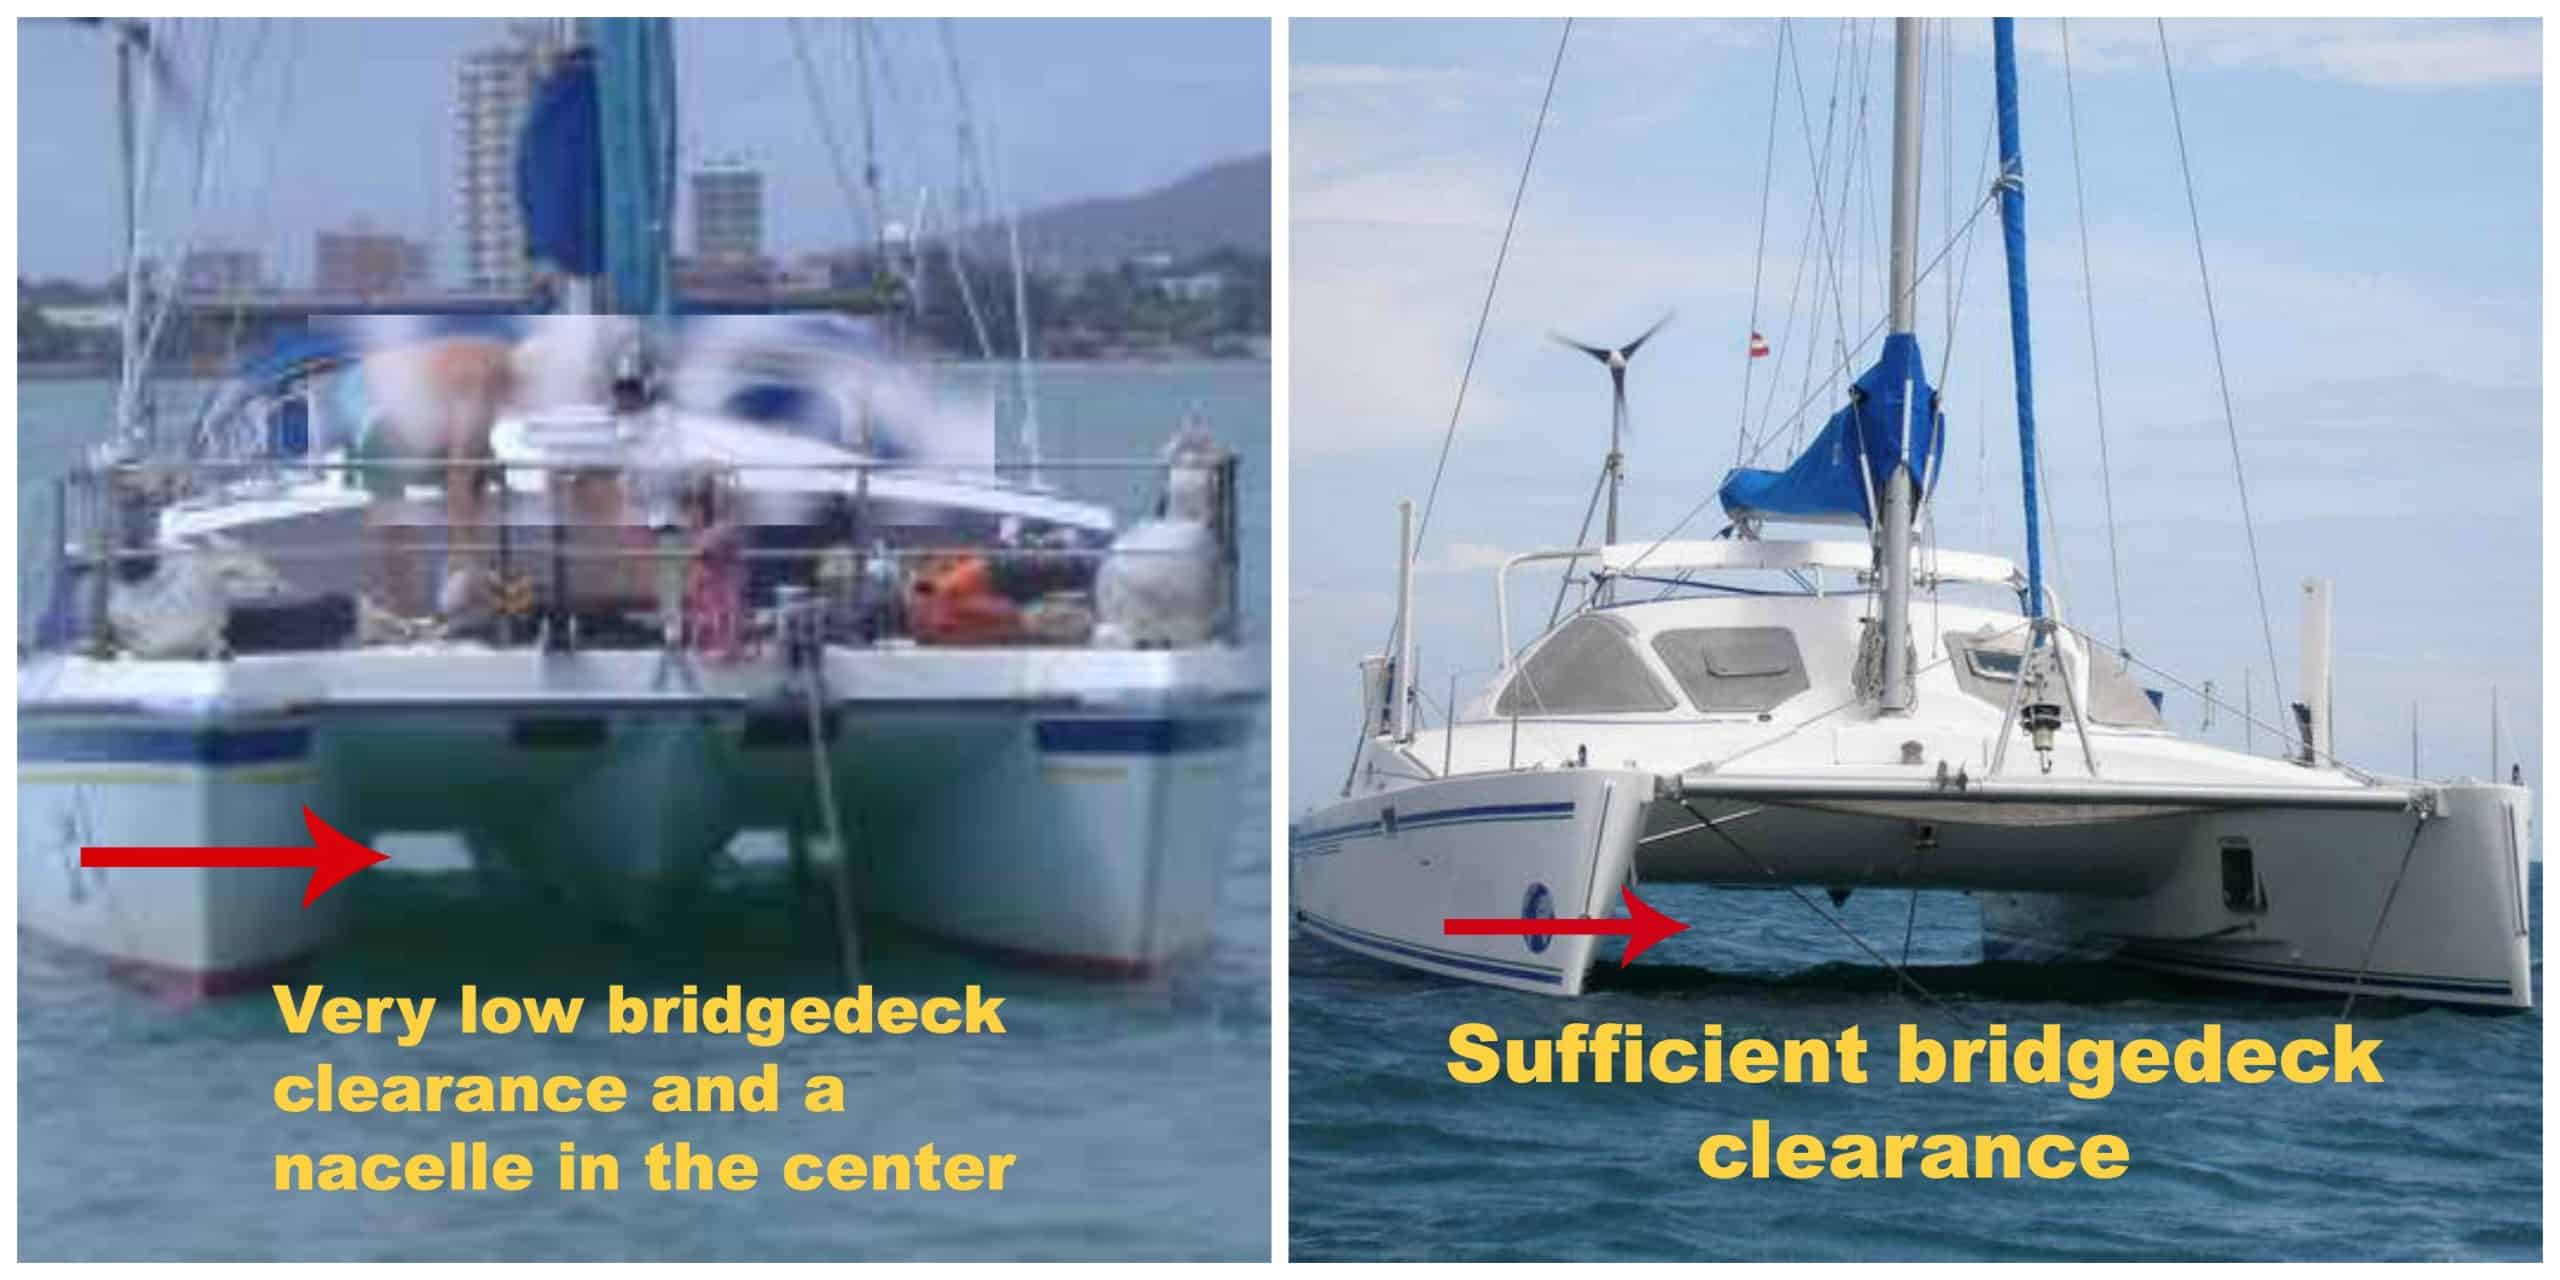 Catamaran Bridgedeck clearance comparisons of too low and well-proportioned catamarans